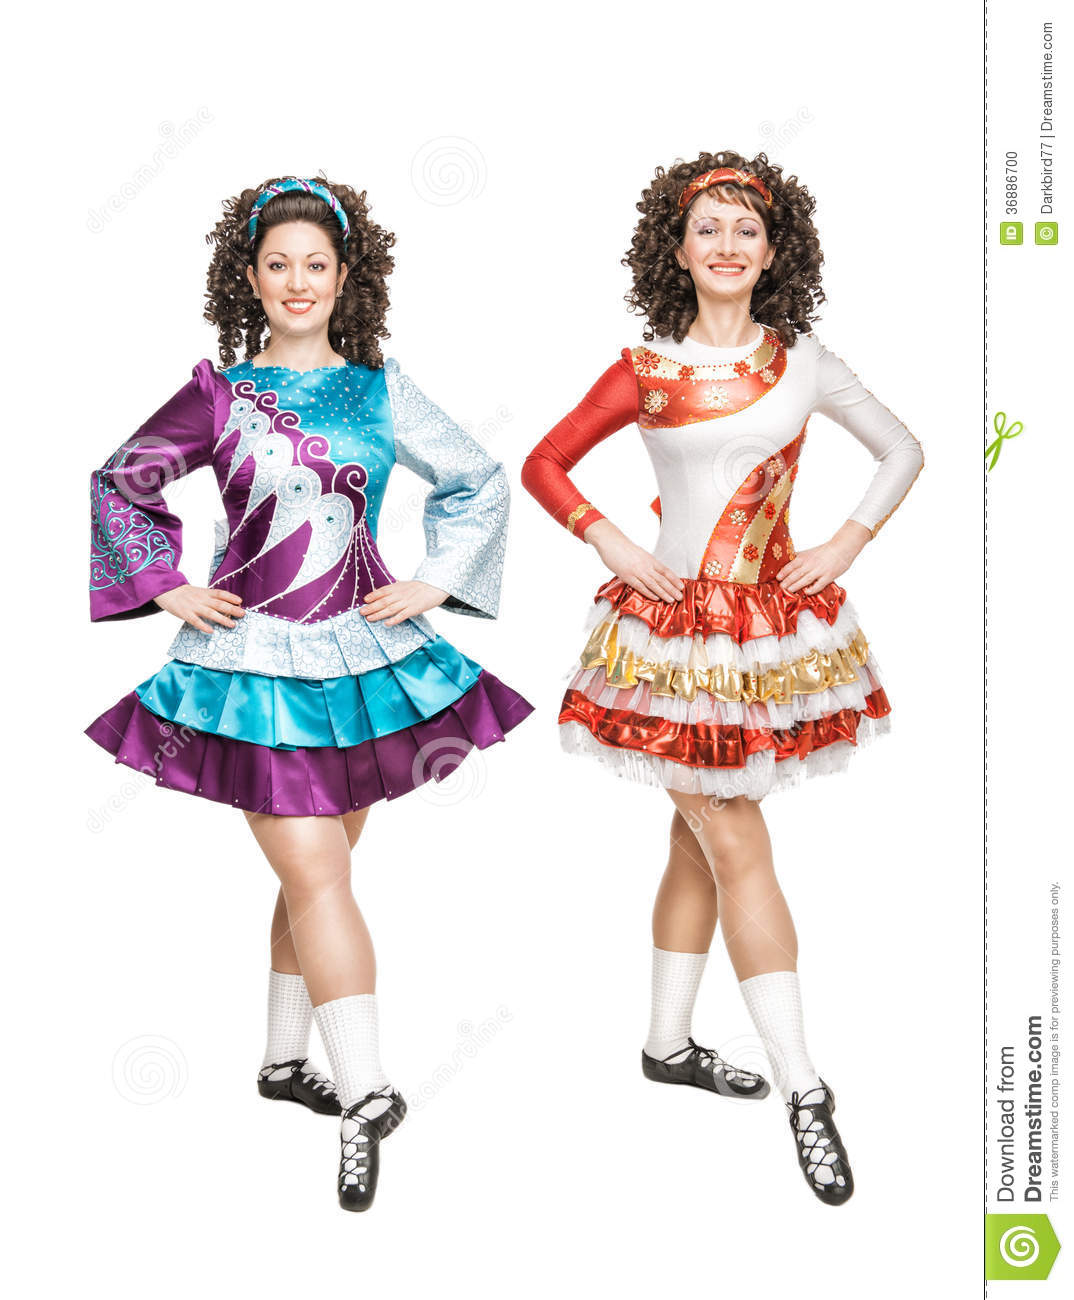 Two Young Women In Irish Dance Dresses Posing Isolated Stock Photo ... 8f99f0c103